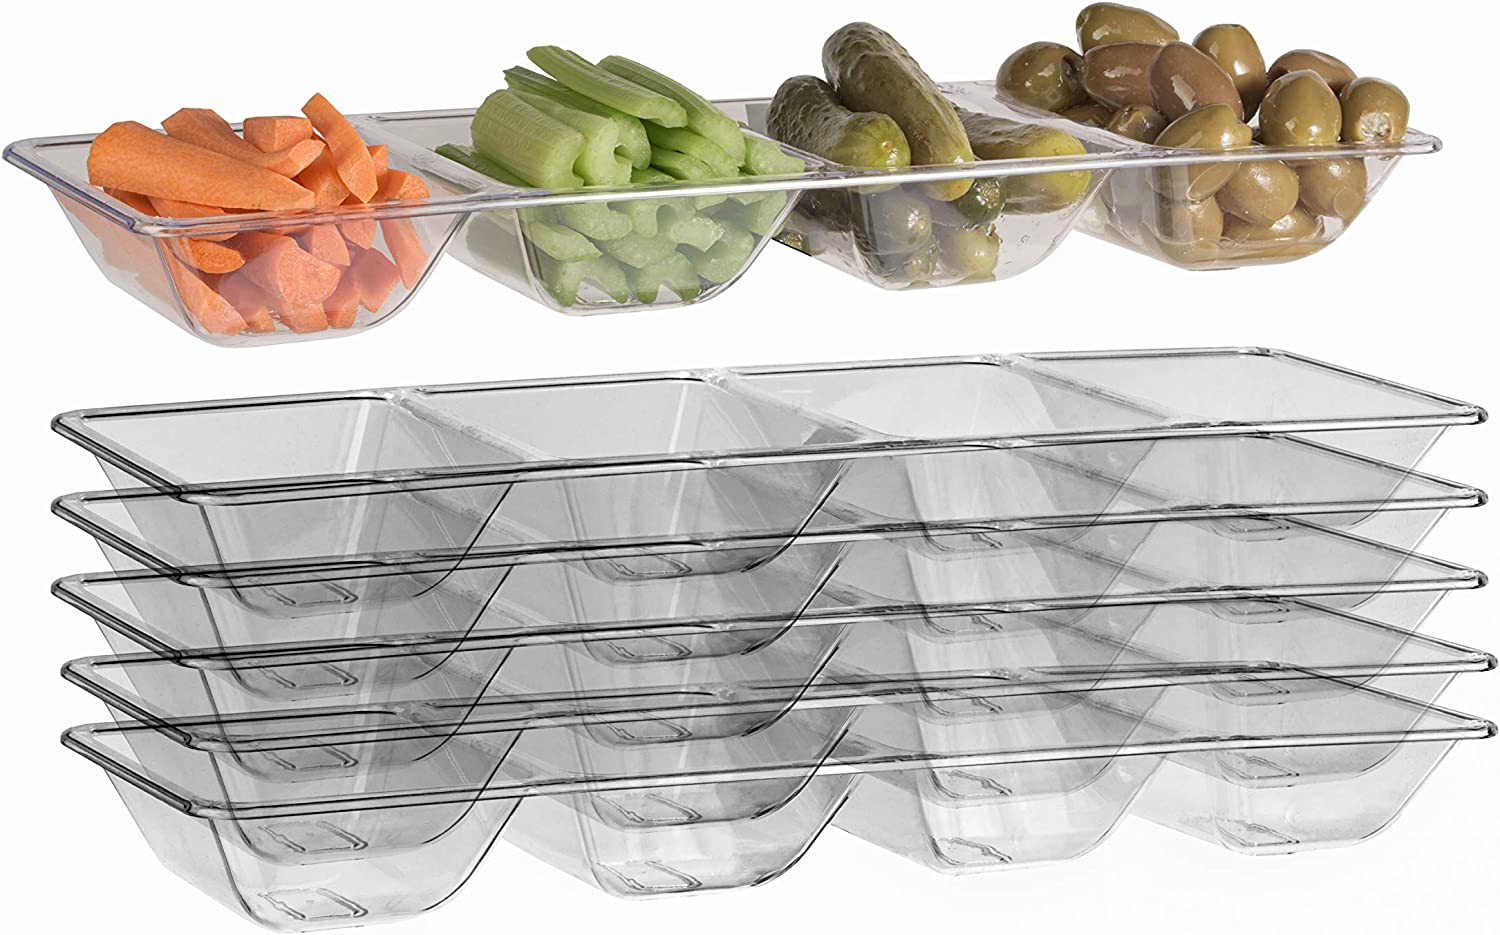 Exquisite 6 Count clear Plastic Compartment Tray For Parties Heavy Duty Serving Tray With Compartments For Food Disposable Sectional Party Trays And Platters 7 In. X 16 In. Candy Dish